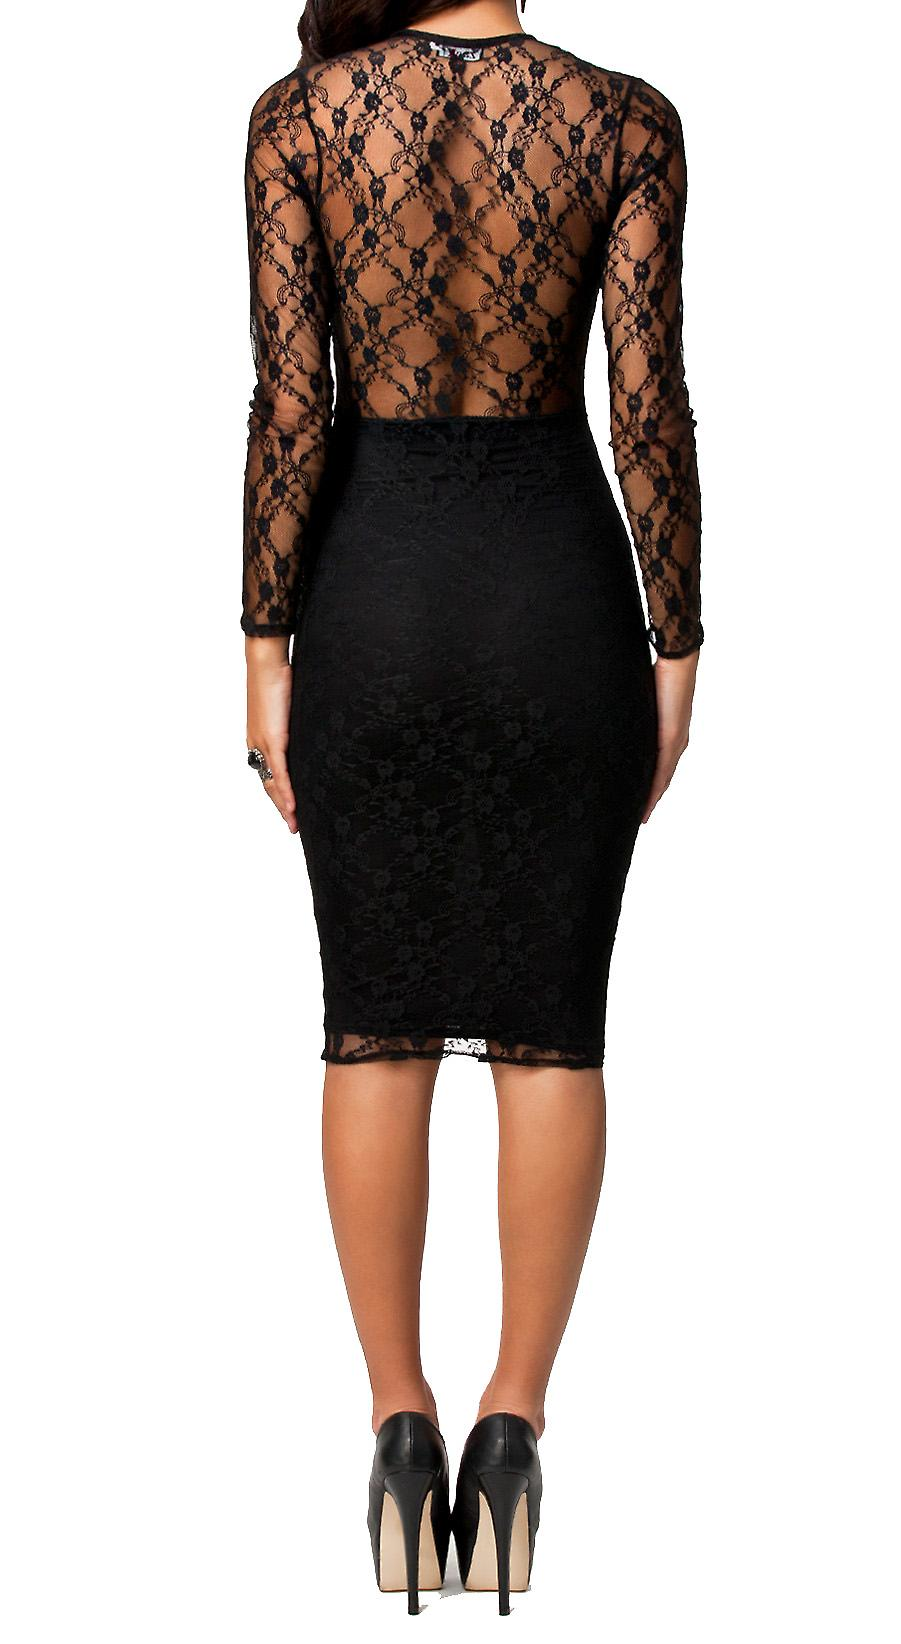 Waooh - Fashion - Dress low-cut lace